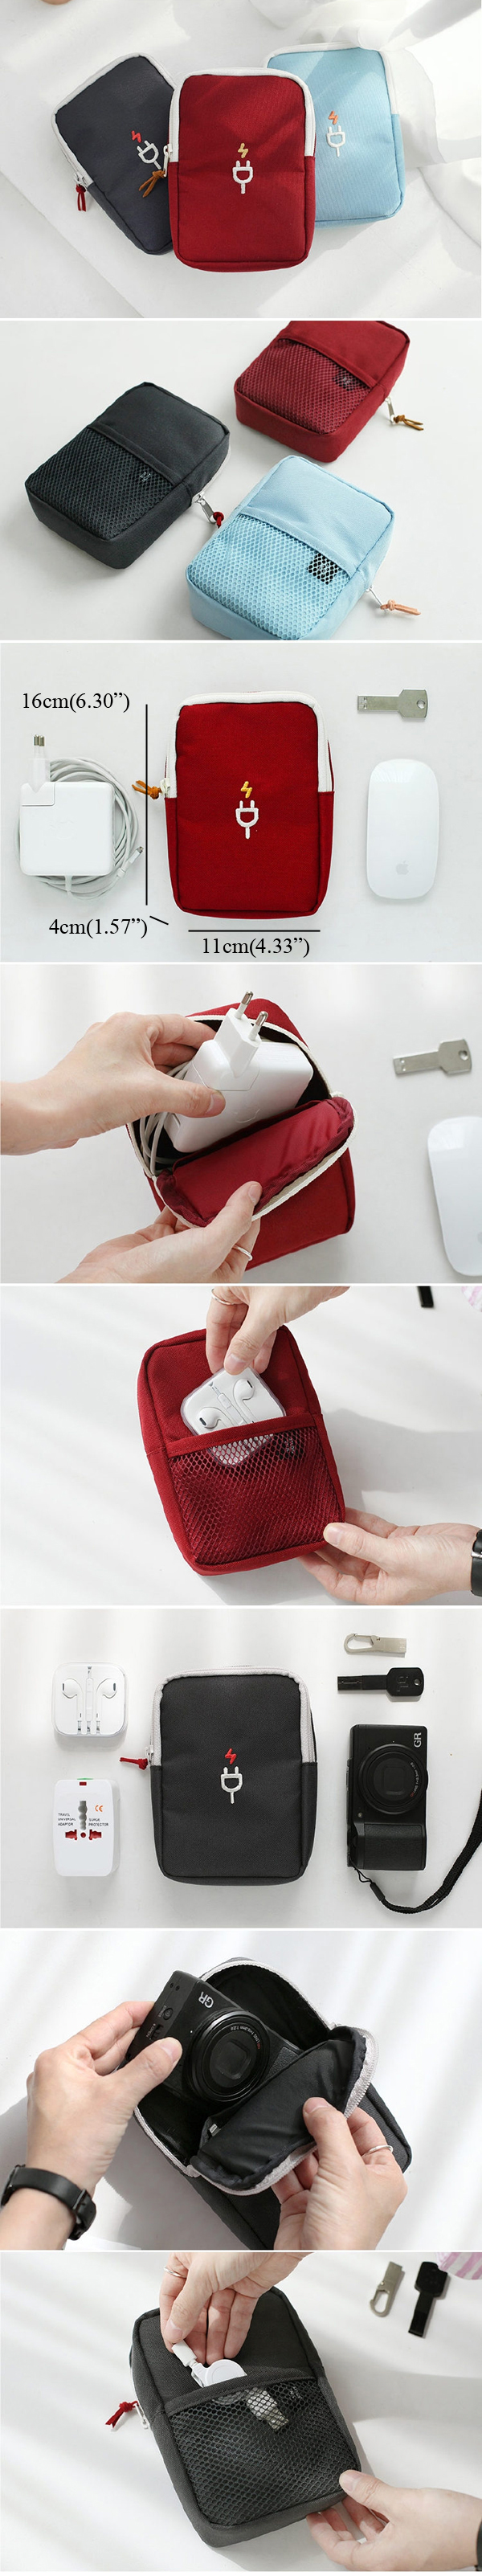 Women Men Charger Camera Data Wire Earphone Oxford Cloth Storage Bag